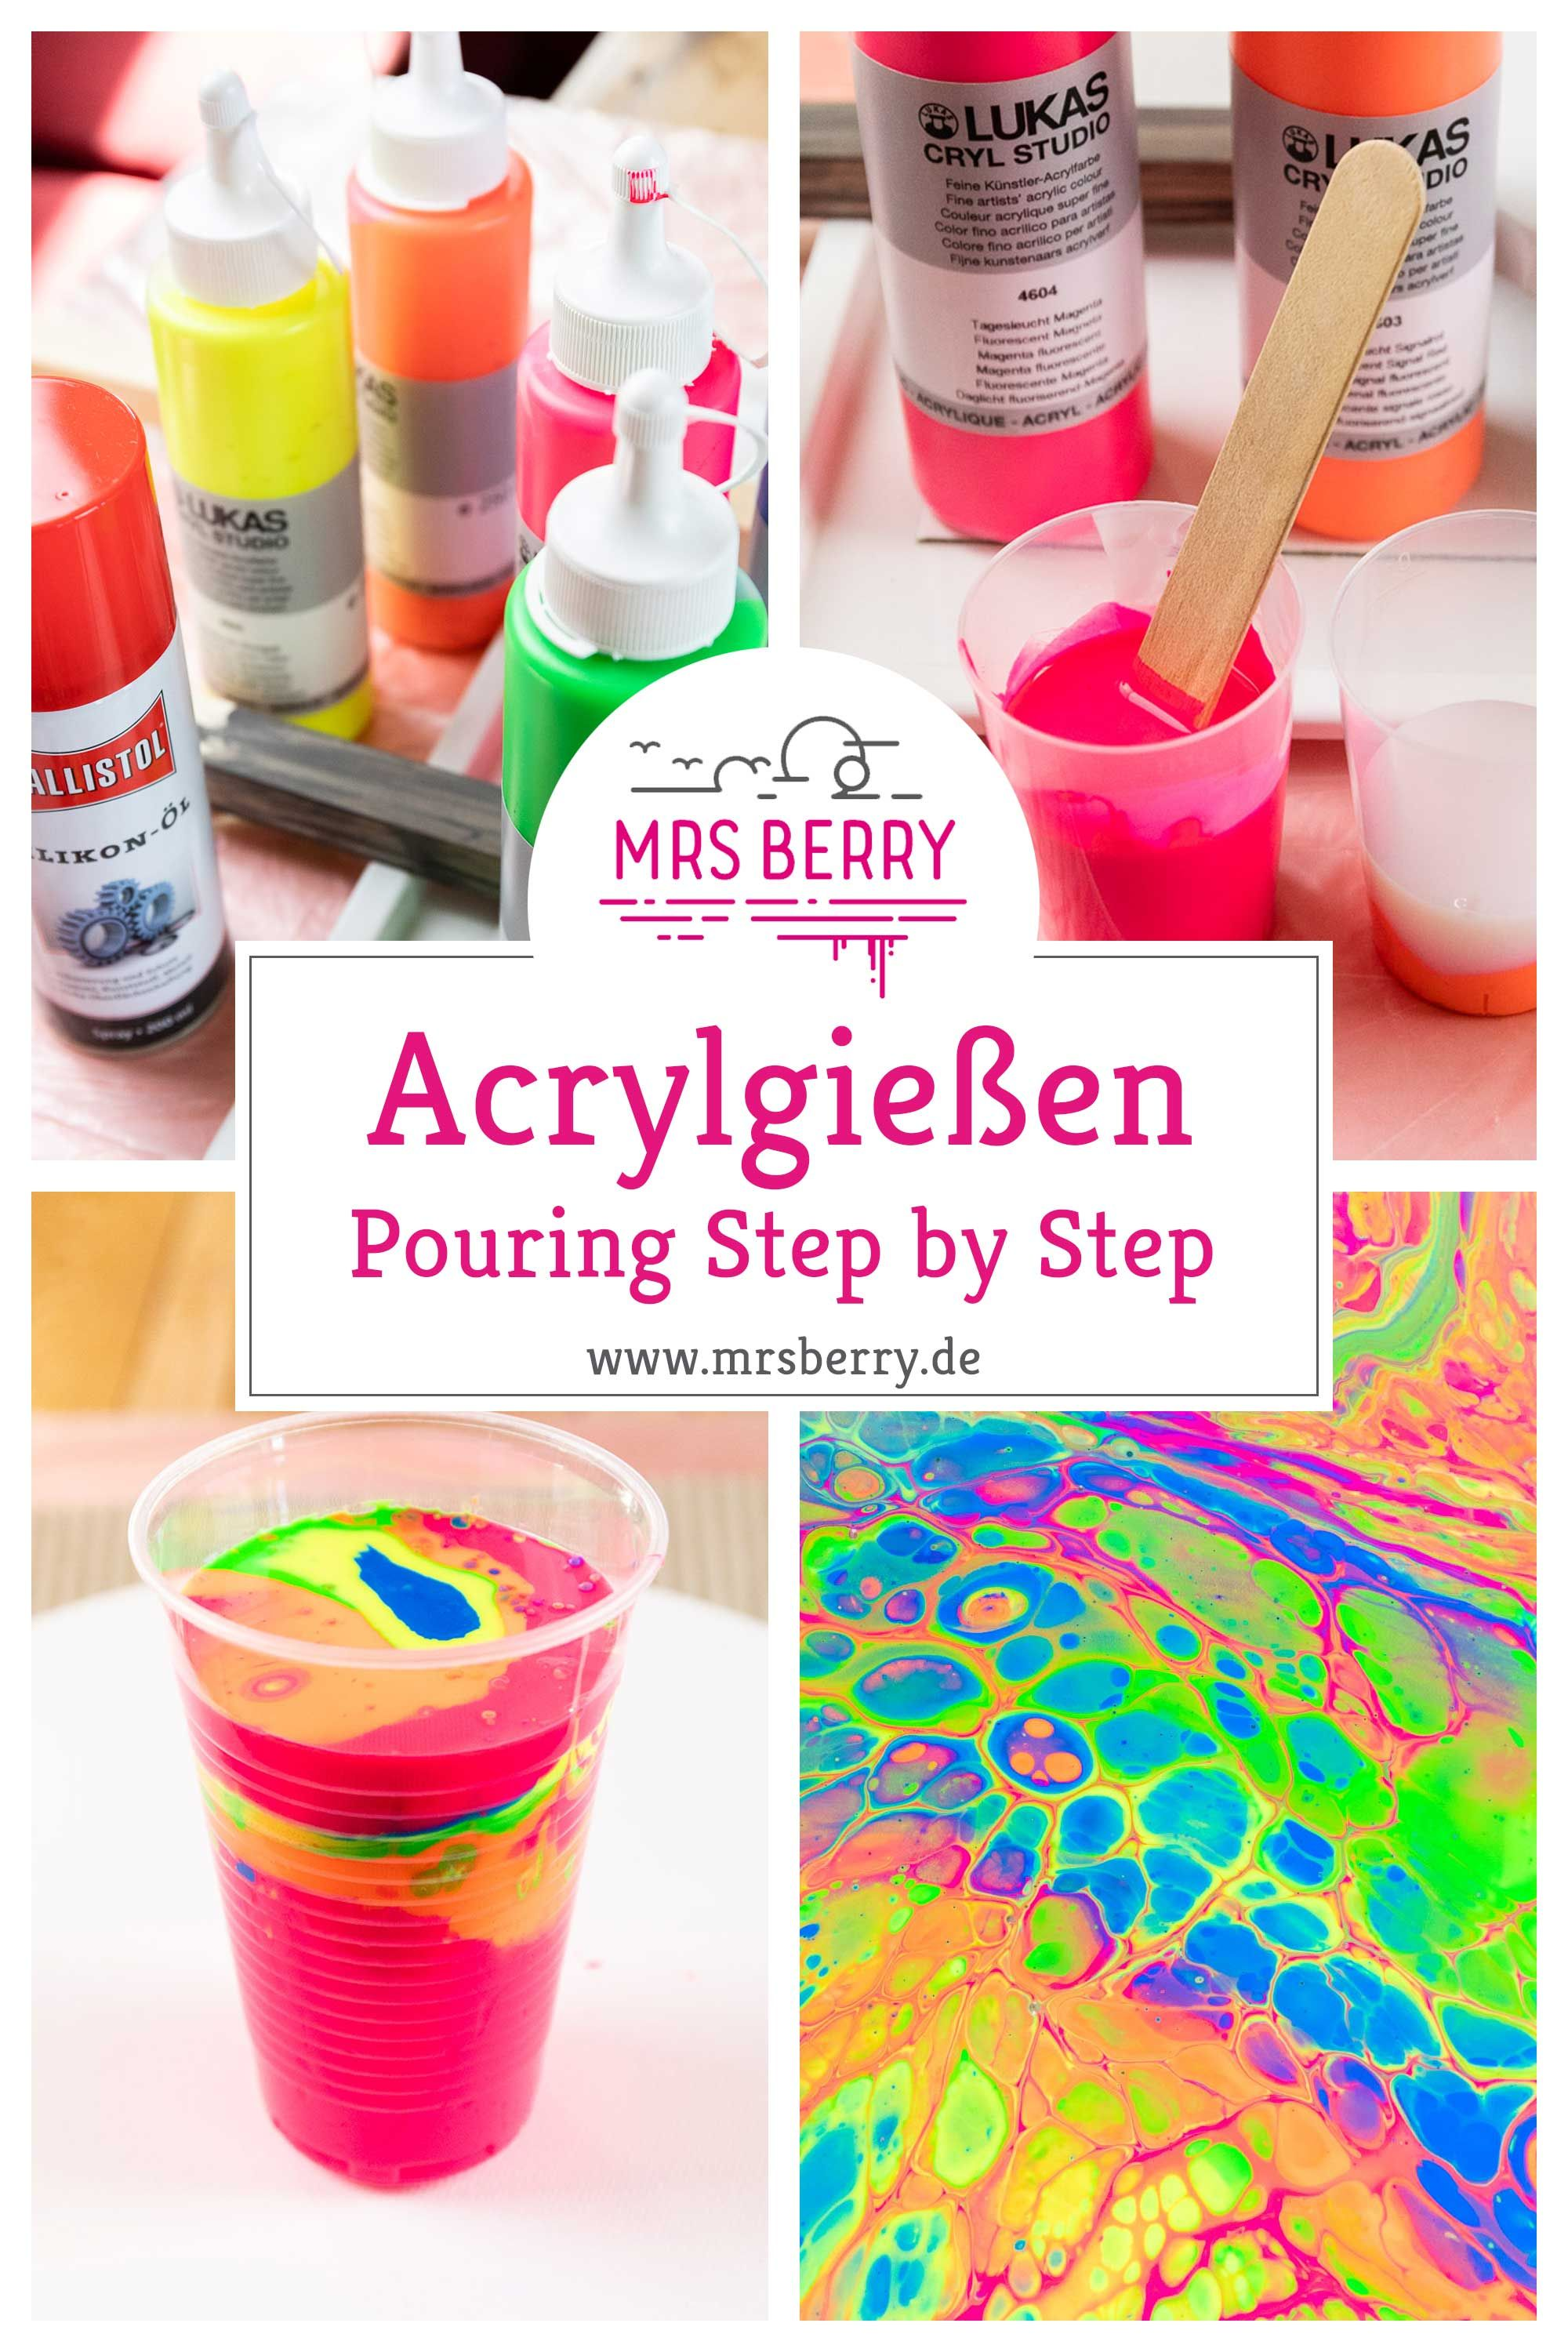 Acrylfarbe gießen – Acrylic Pouring der neue DIY Trend